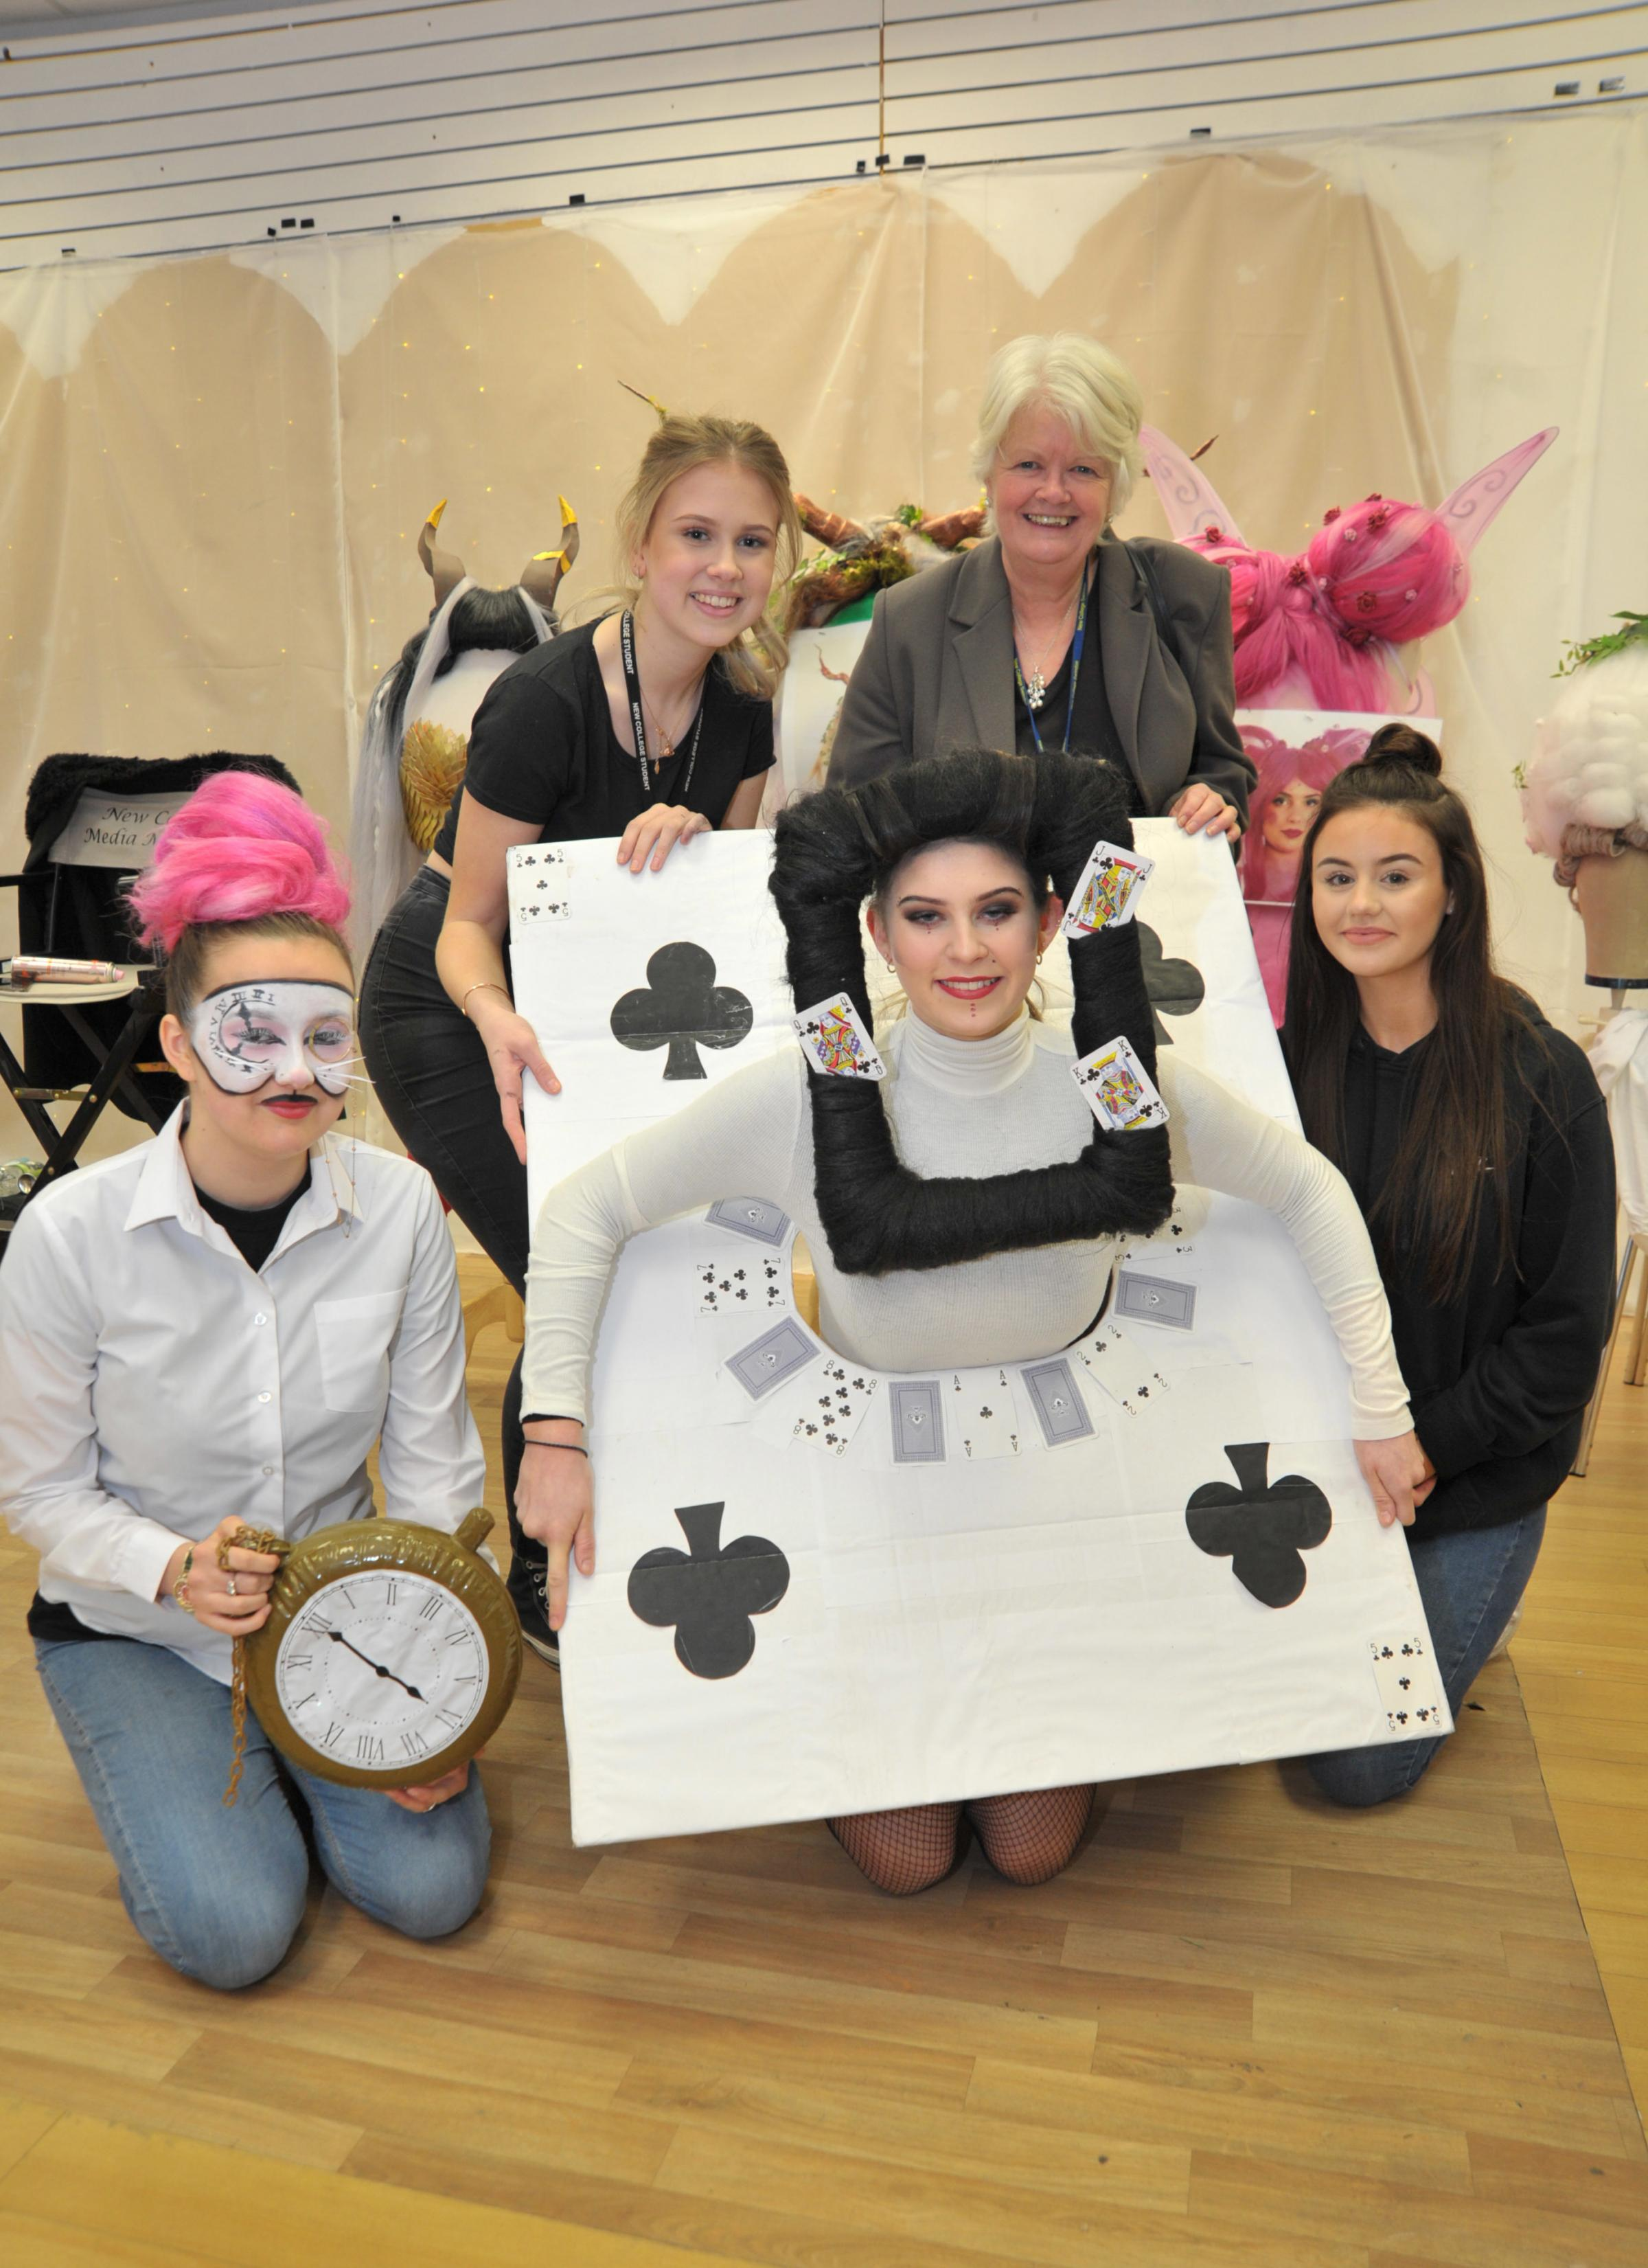 New College students creates exhibition of makeup and costumes in Swindon